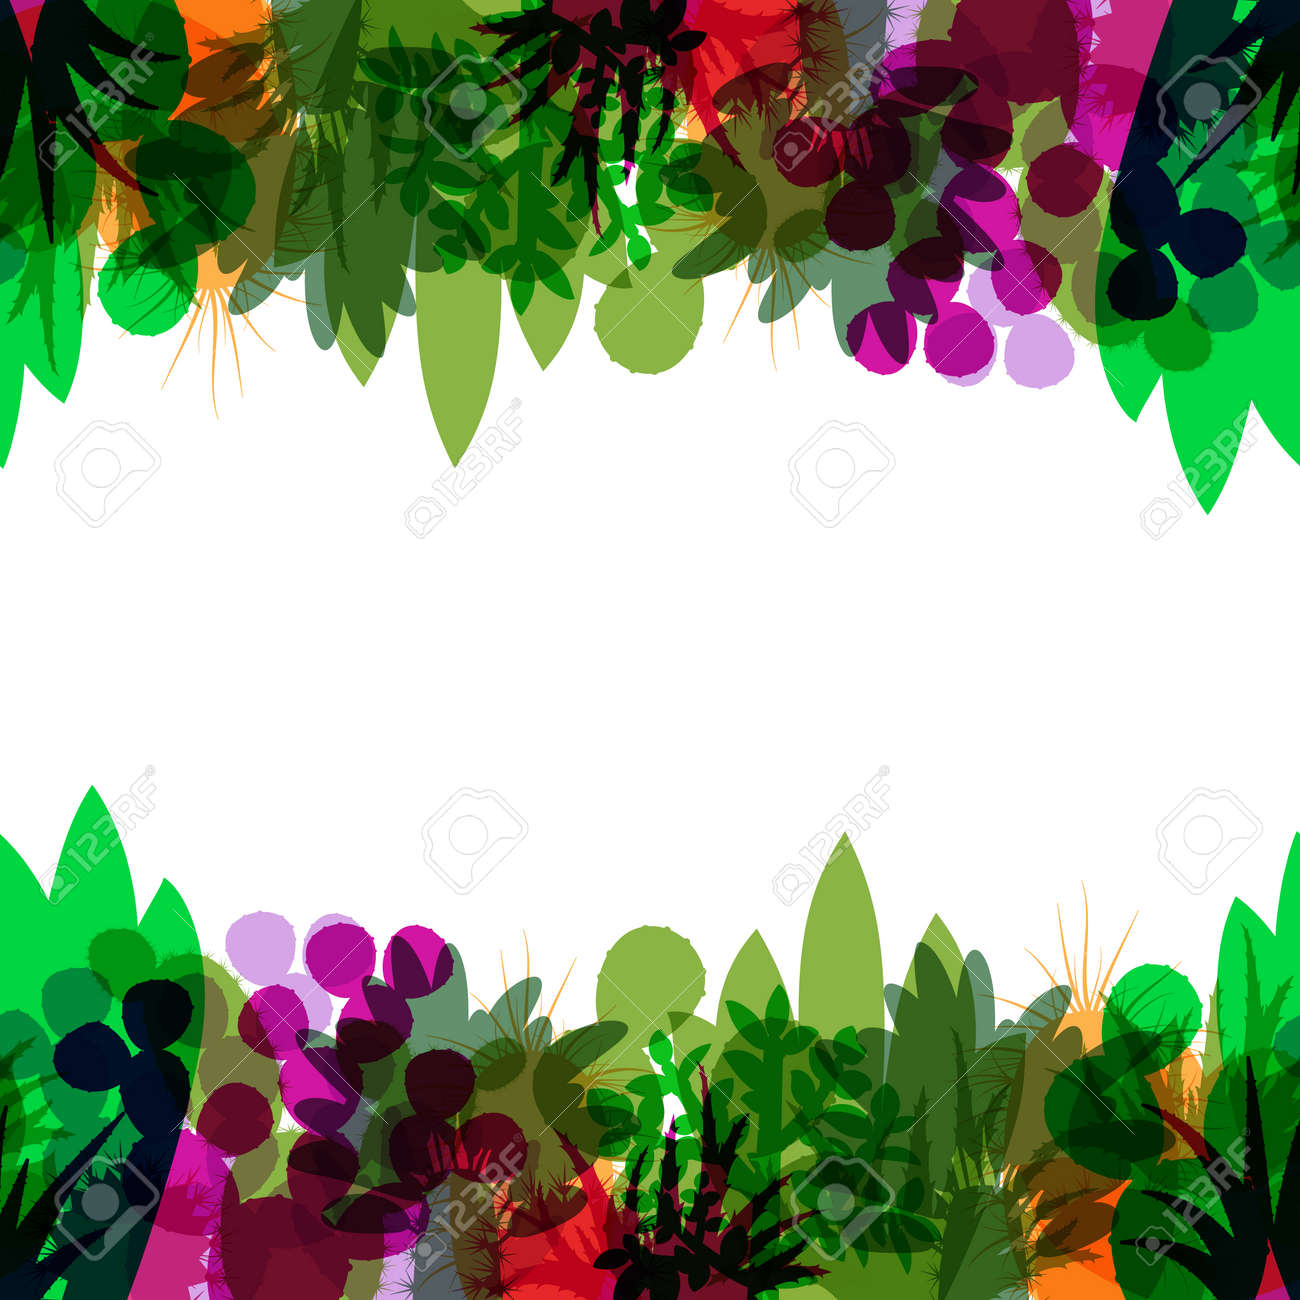 Seamless Border Of Silhouettes Of Cacti And Succulents Seamless Royalty Free Cliparts Vectors And Stock Illustration Image 55798699